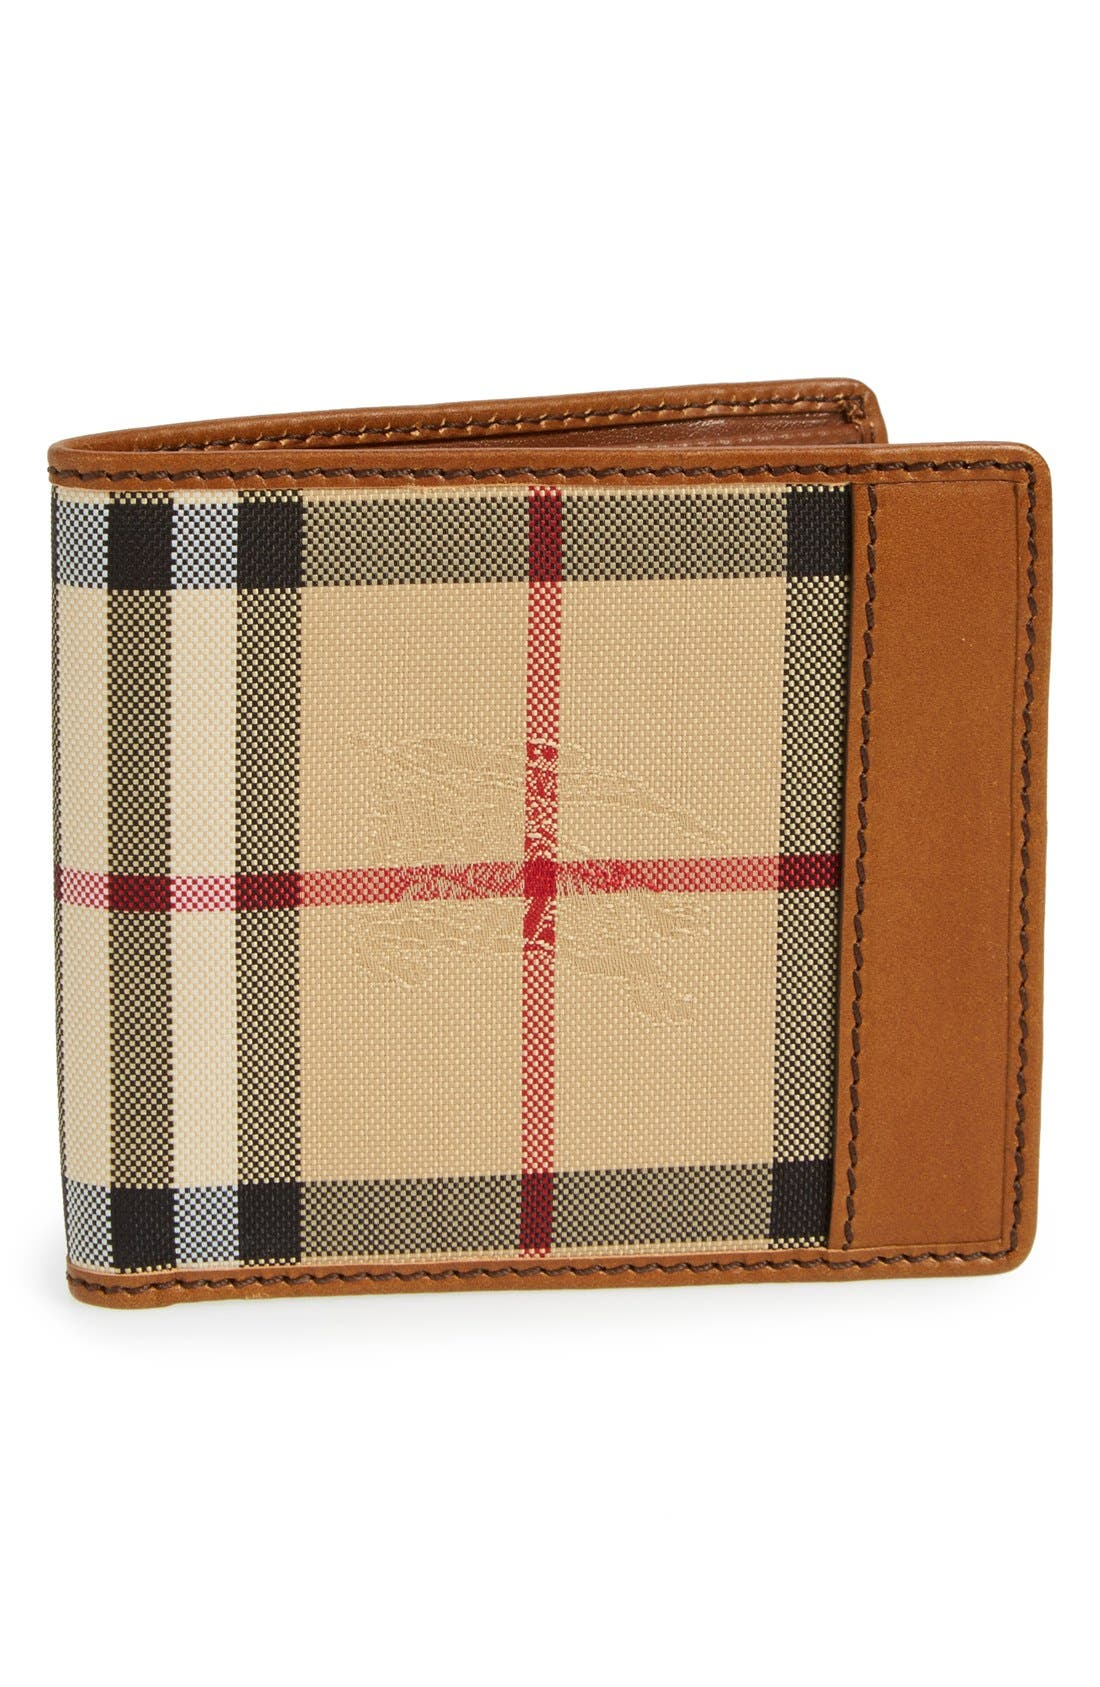 Horseferry Check Billfold Wallet,                         Main,                         color, Tan